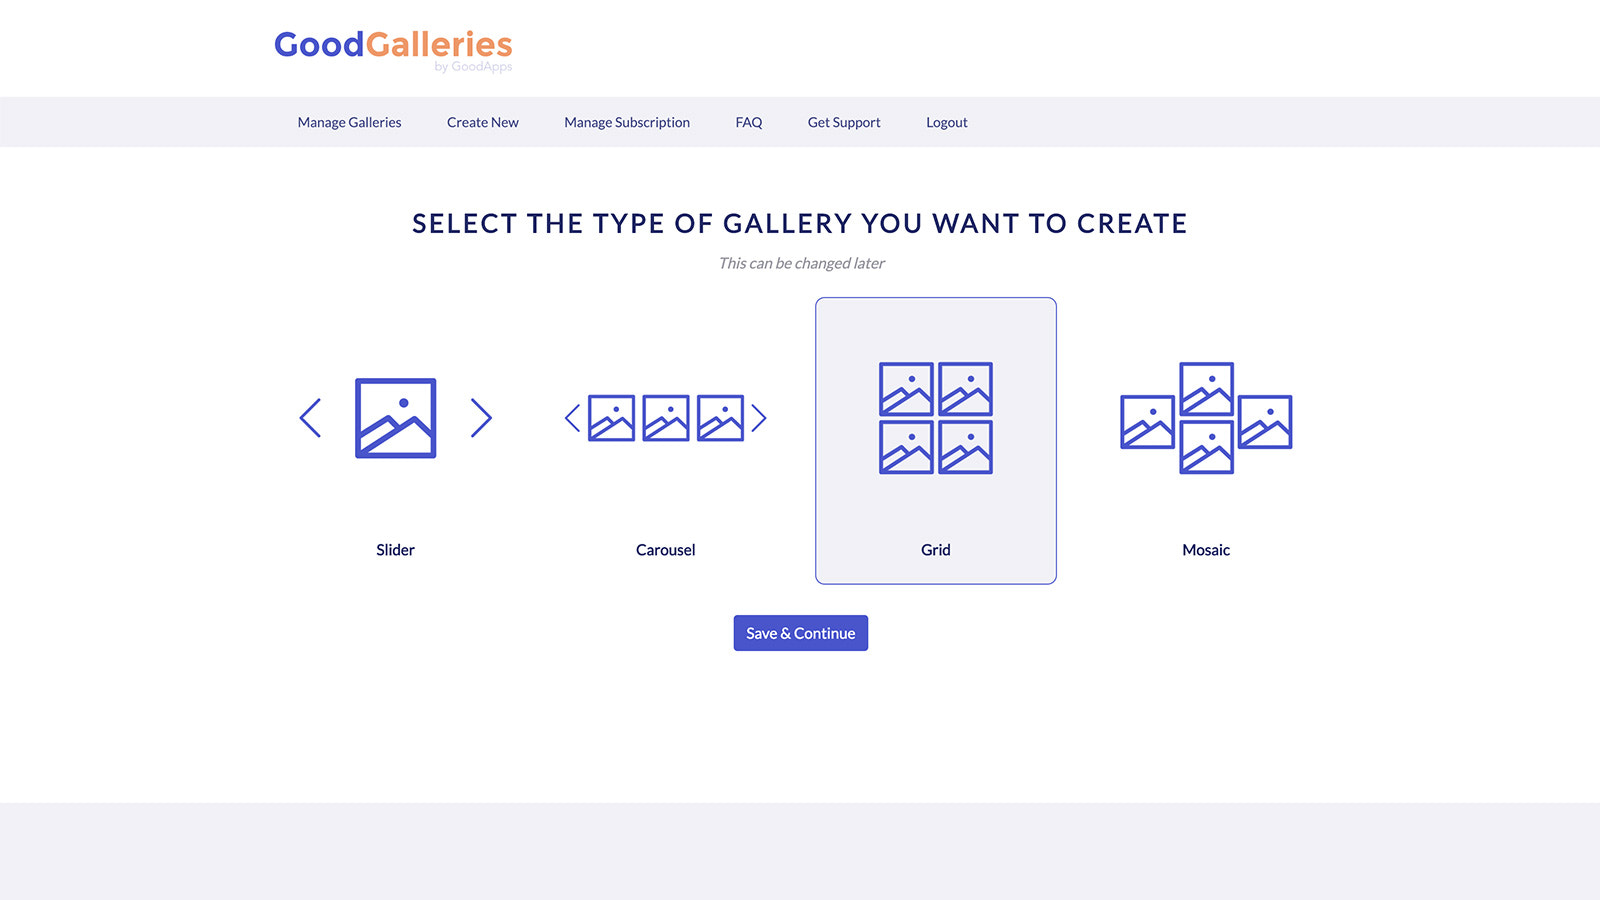 Select from various types of galleries